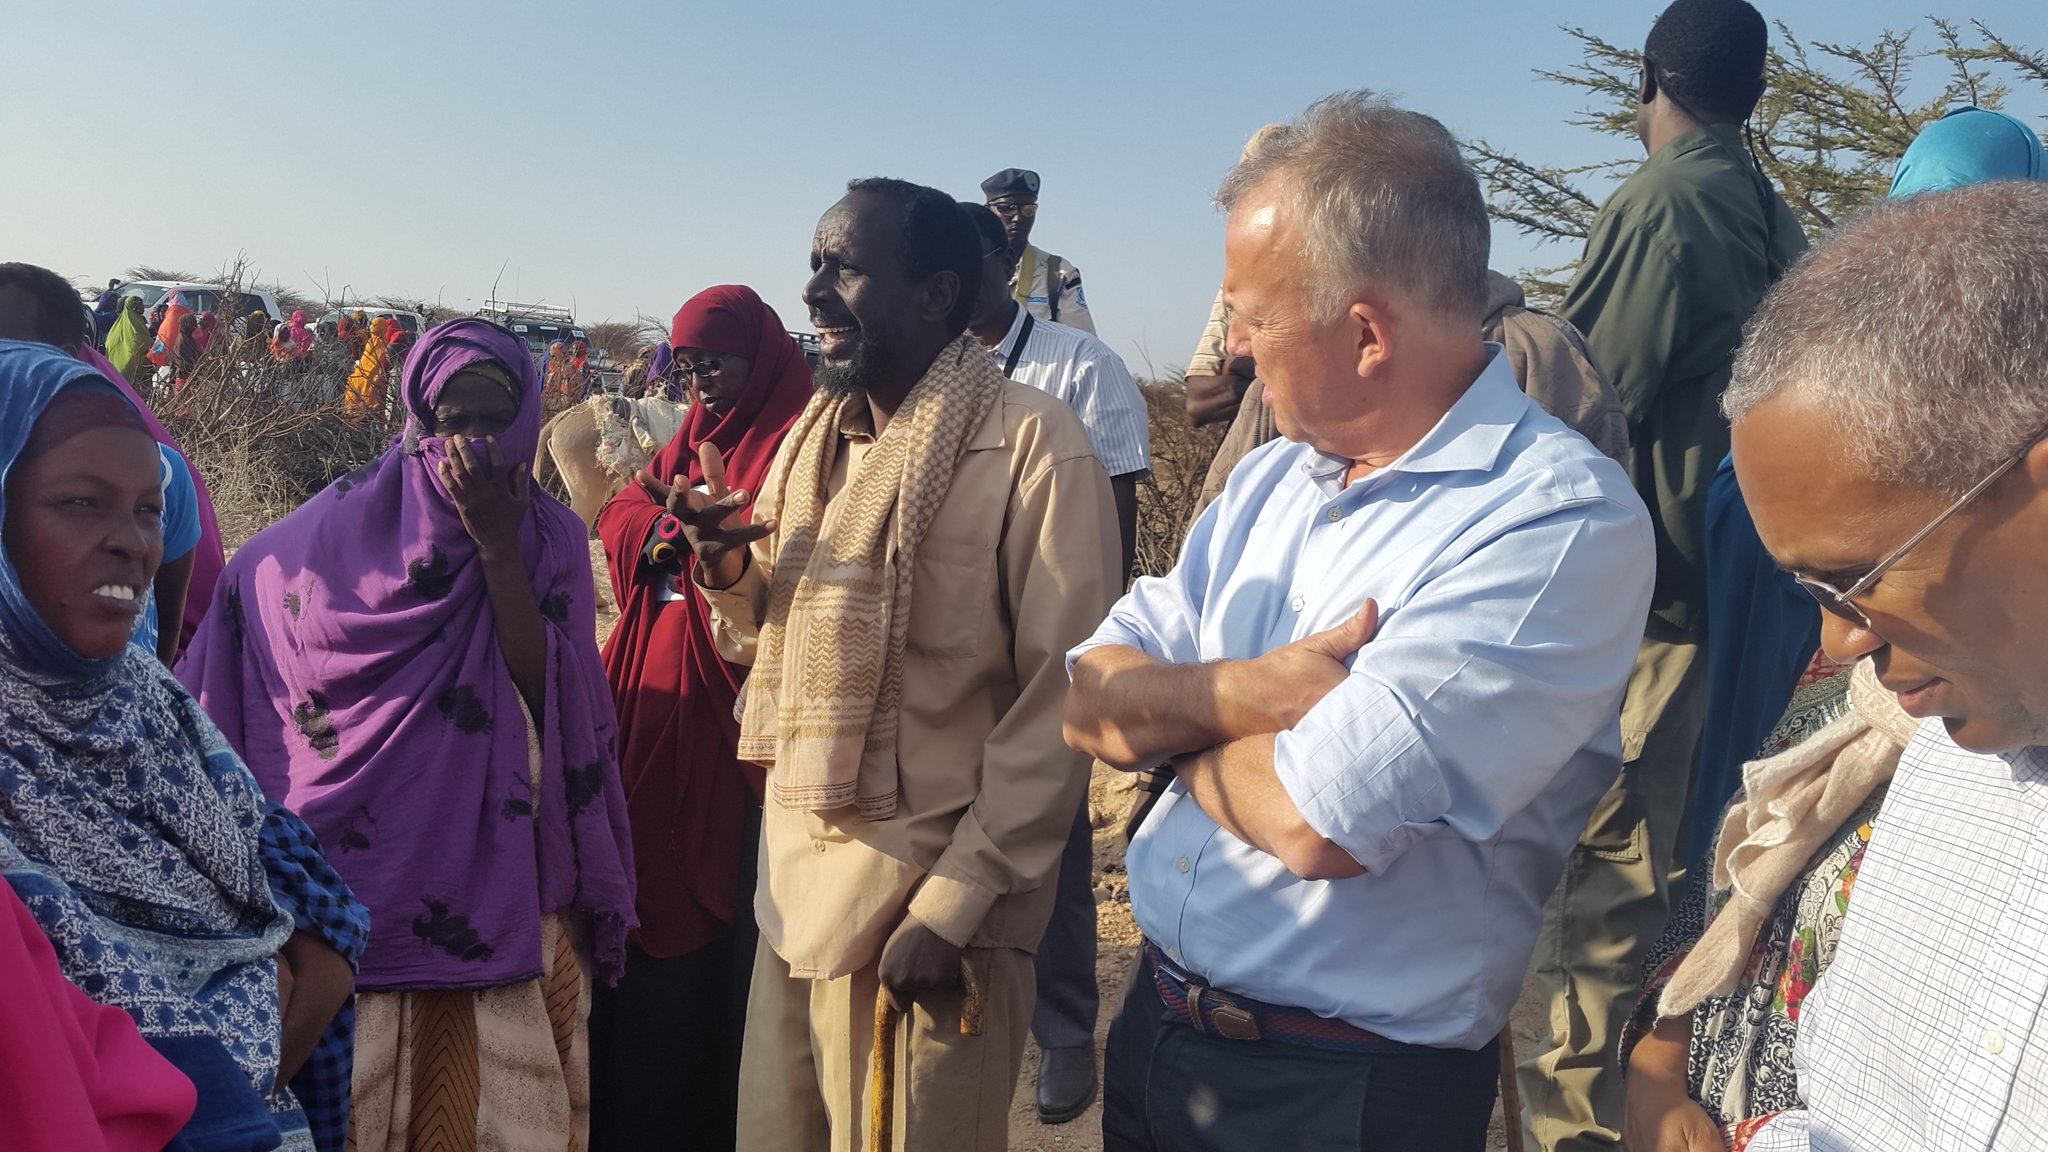 .@SRSGKeating meets w/ #Somaliland villagers at 1 of 8 UNICEF-funded water distribution sites for 2700 families in drought-hit rural areas https://t.co/p2vCe7lFnQ